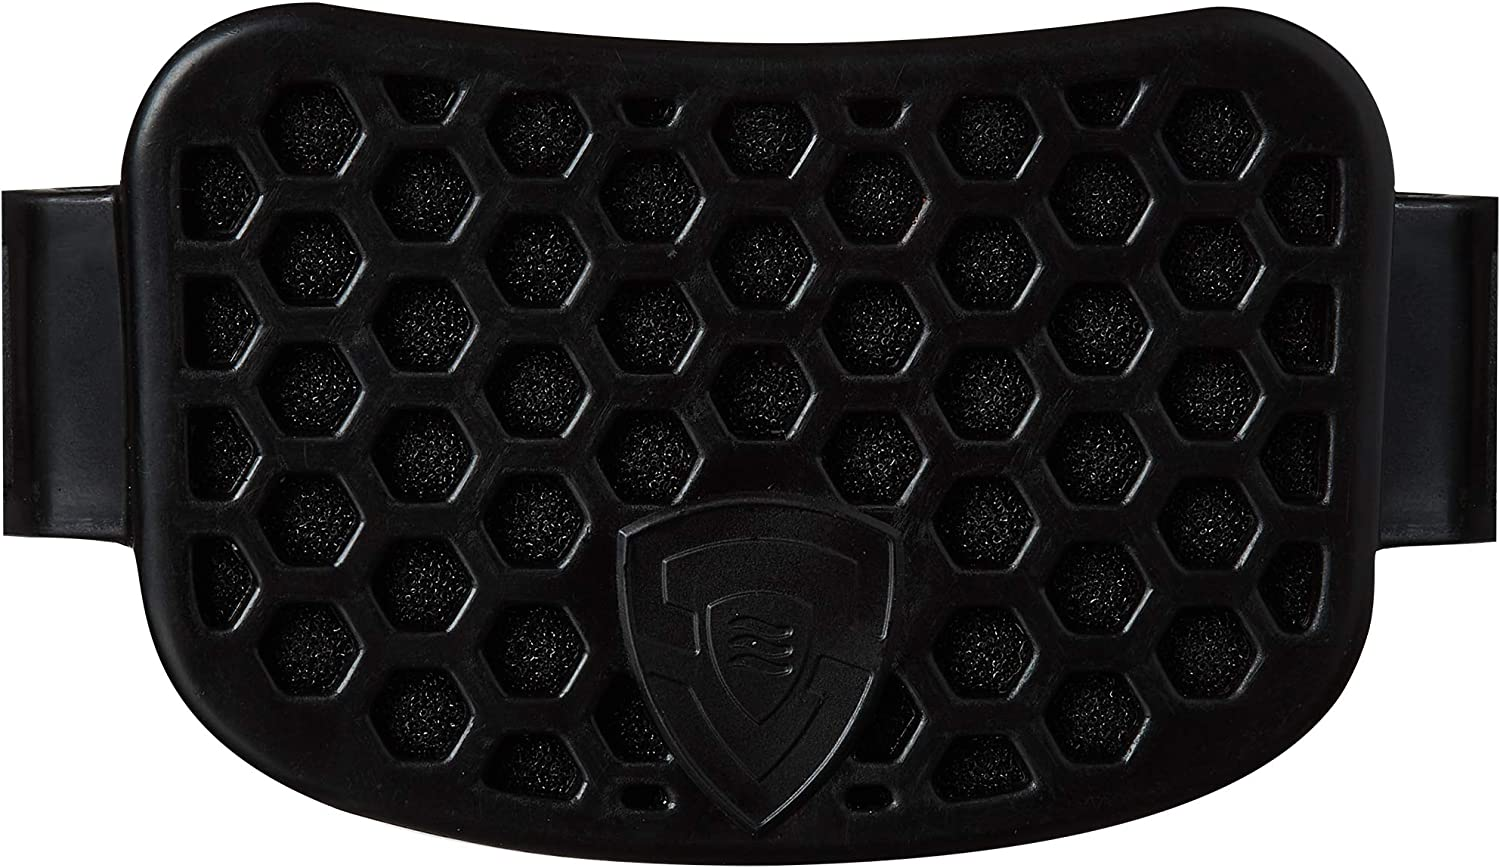 Universal Fit Radio Guard 2-Way Radio Cover Shield Sahara Shield Radio Cover Ideal for Construction Workers and Railroad Operators Wind Dirt and Debris Protection for Walkie Talkie Station